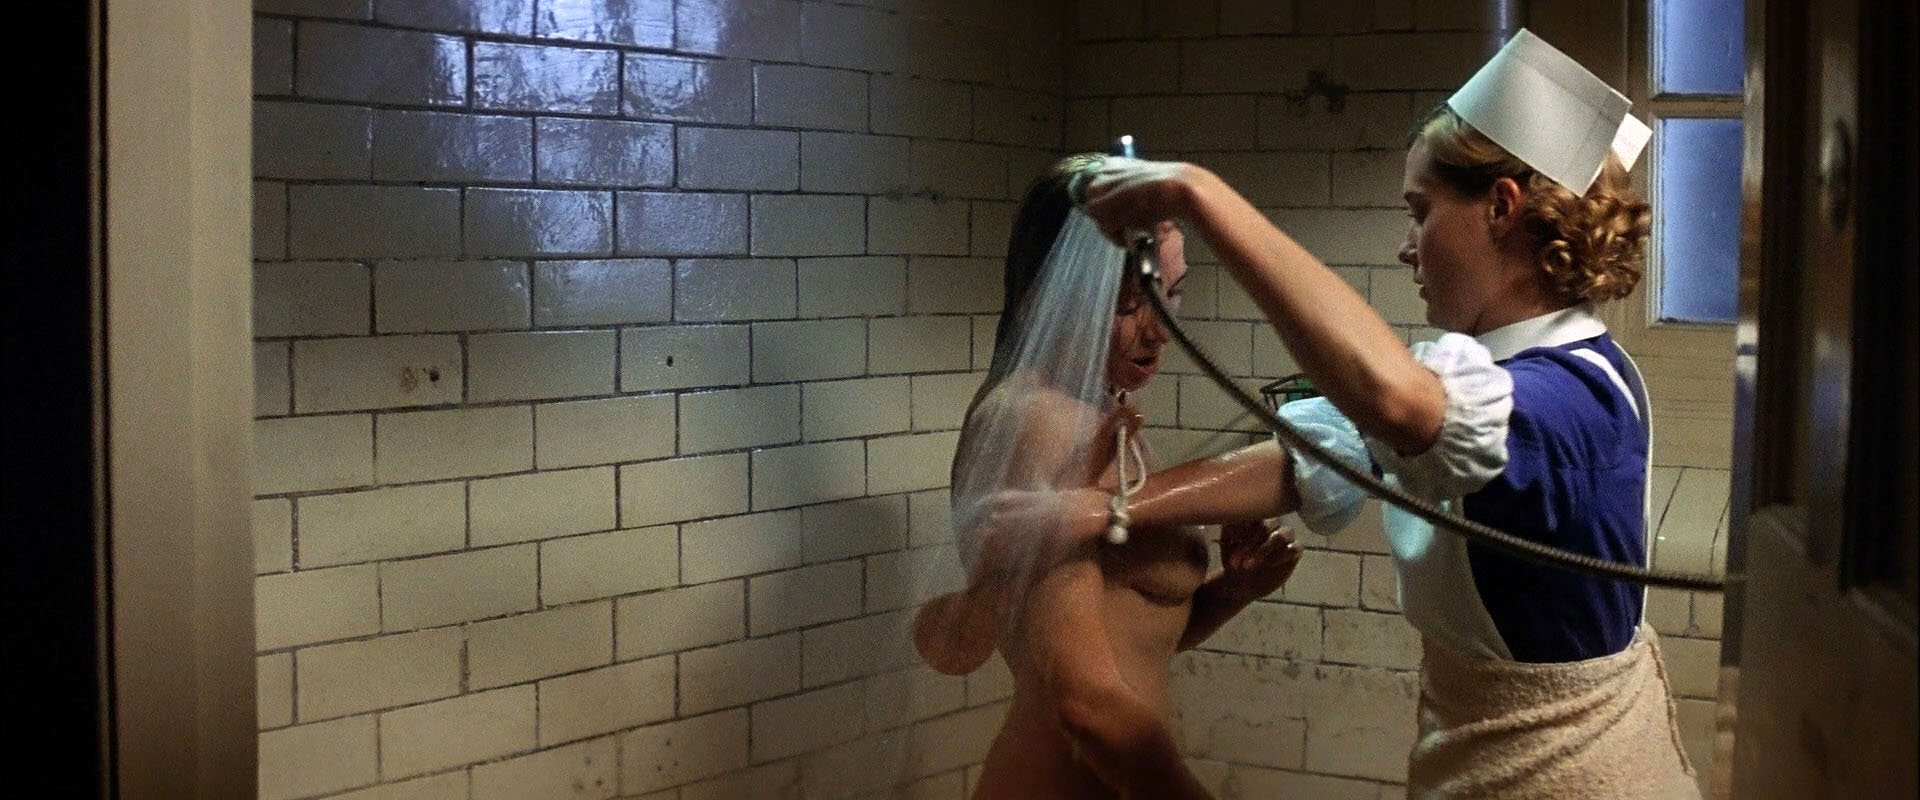 Joely richardson sex scene in lady chatterley scandalplanet - 2 part 5